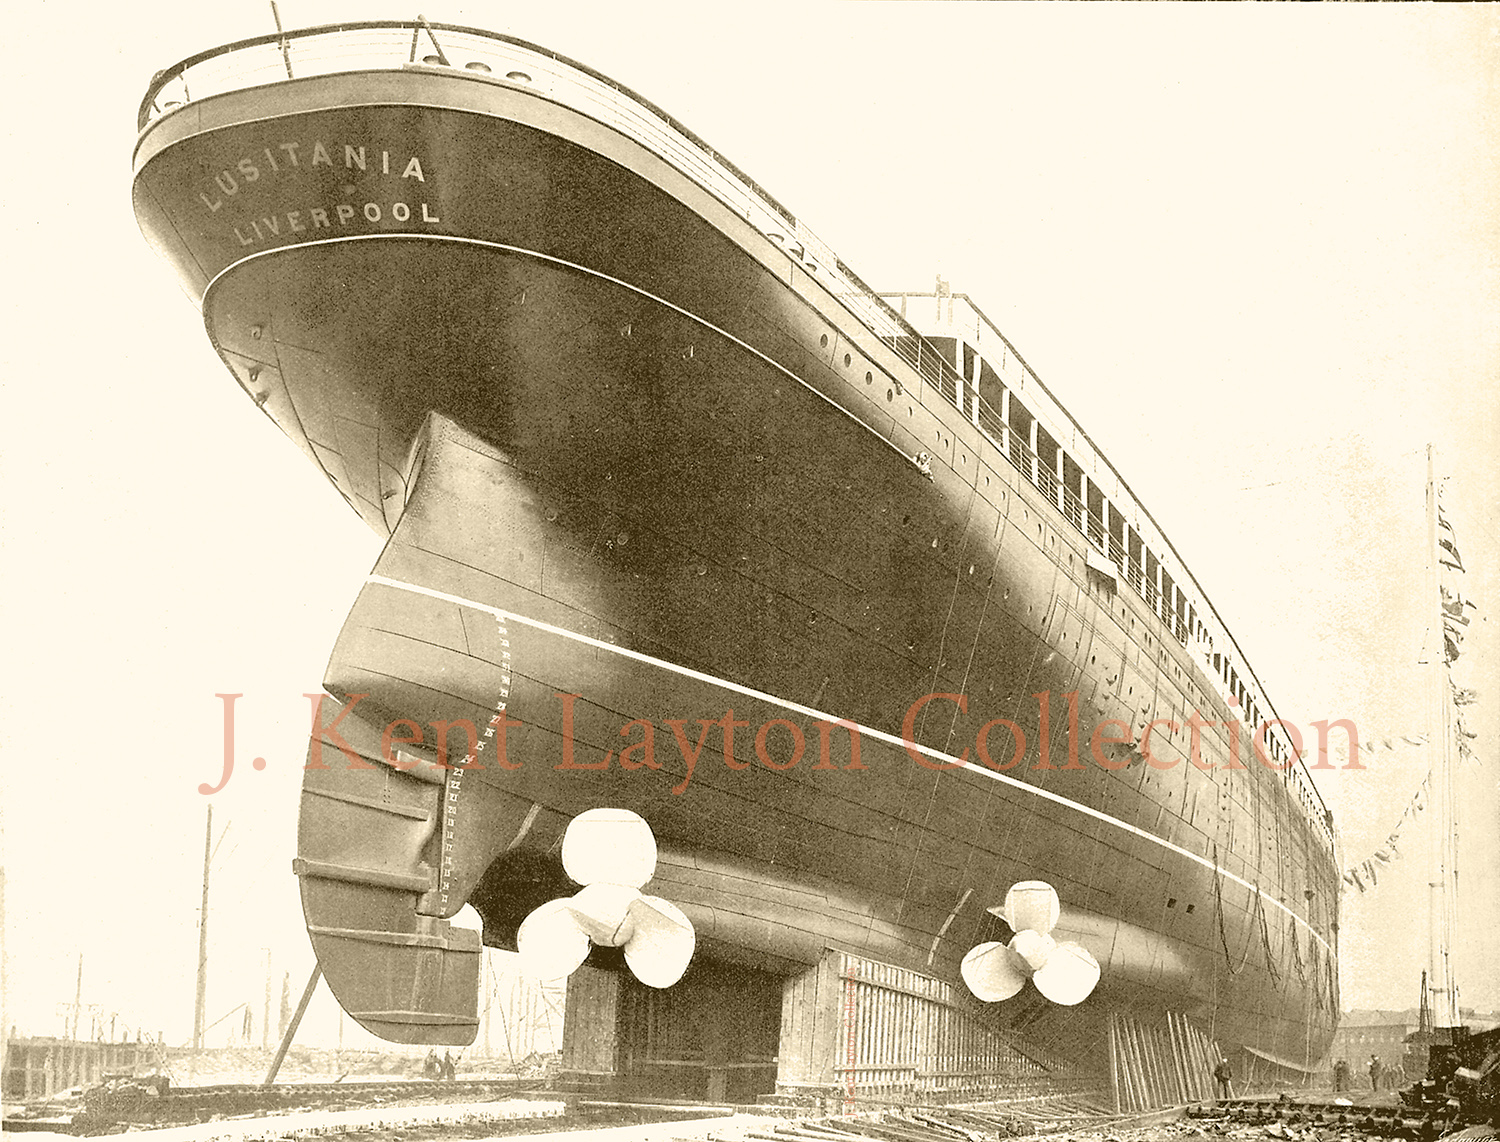 This stern view of the Lusitania gives some sense of her actual size. Notice the people standing on the ways below her. (J. Kent Layton Collection)